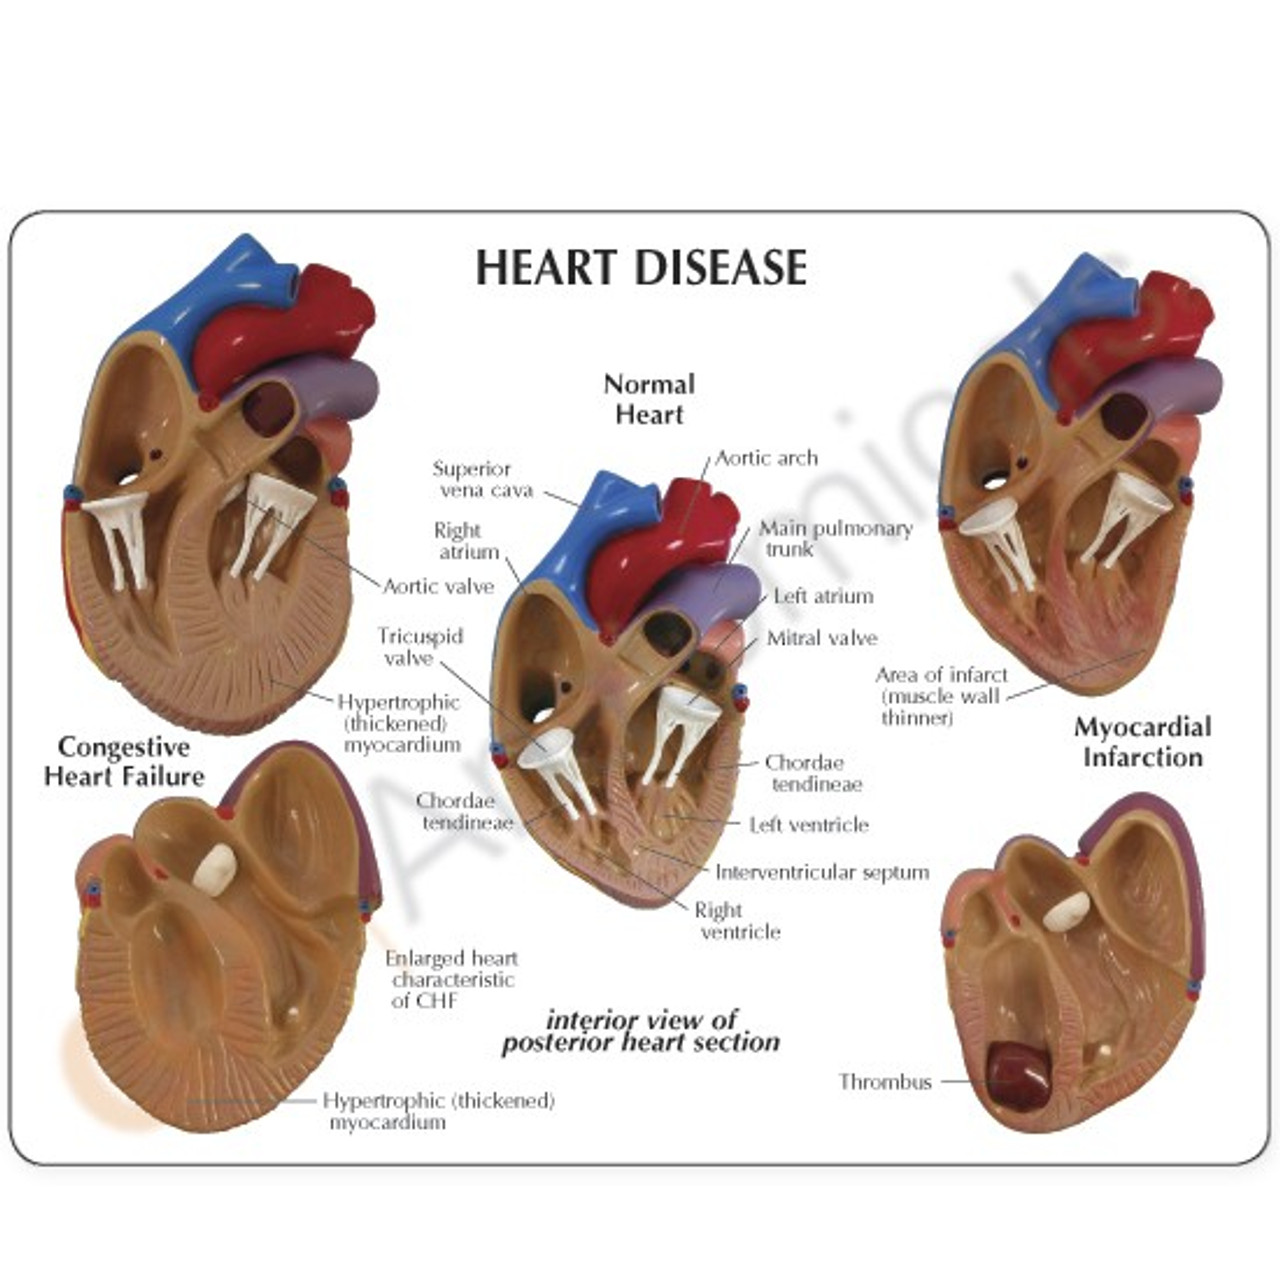 Heart Disease Model Description Card